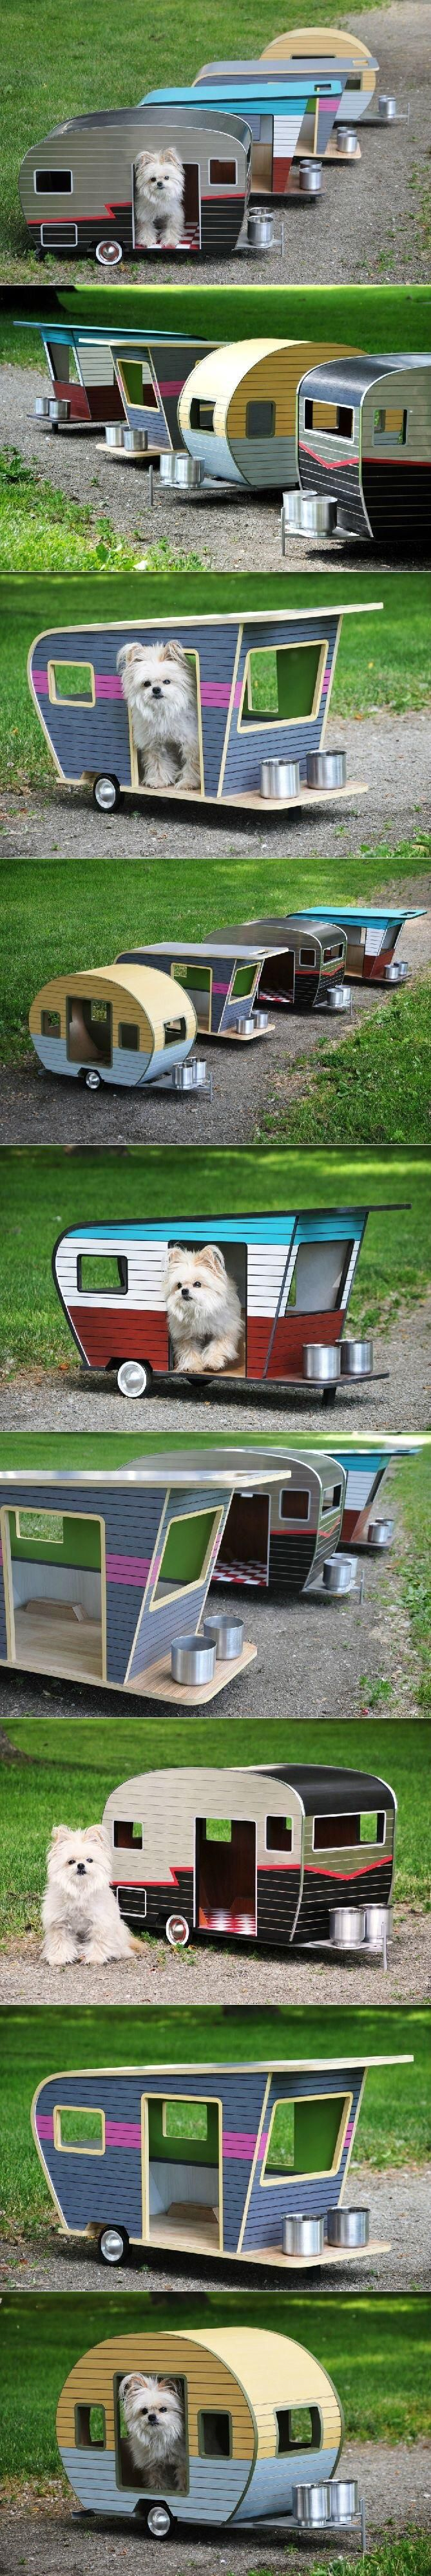 A camper dog house! This is pretty cool! #dogpictures #dogs #aww #cuteanimals #dogsoftwitter #dog #cute